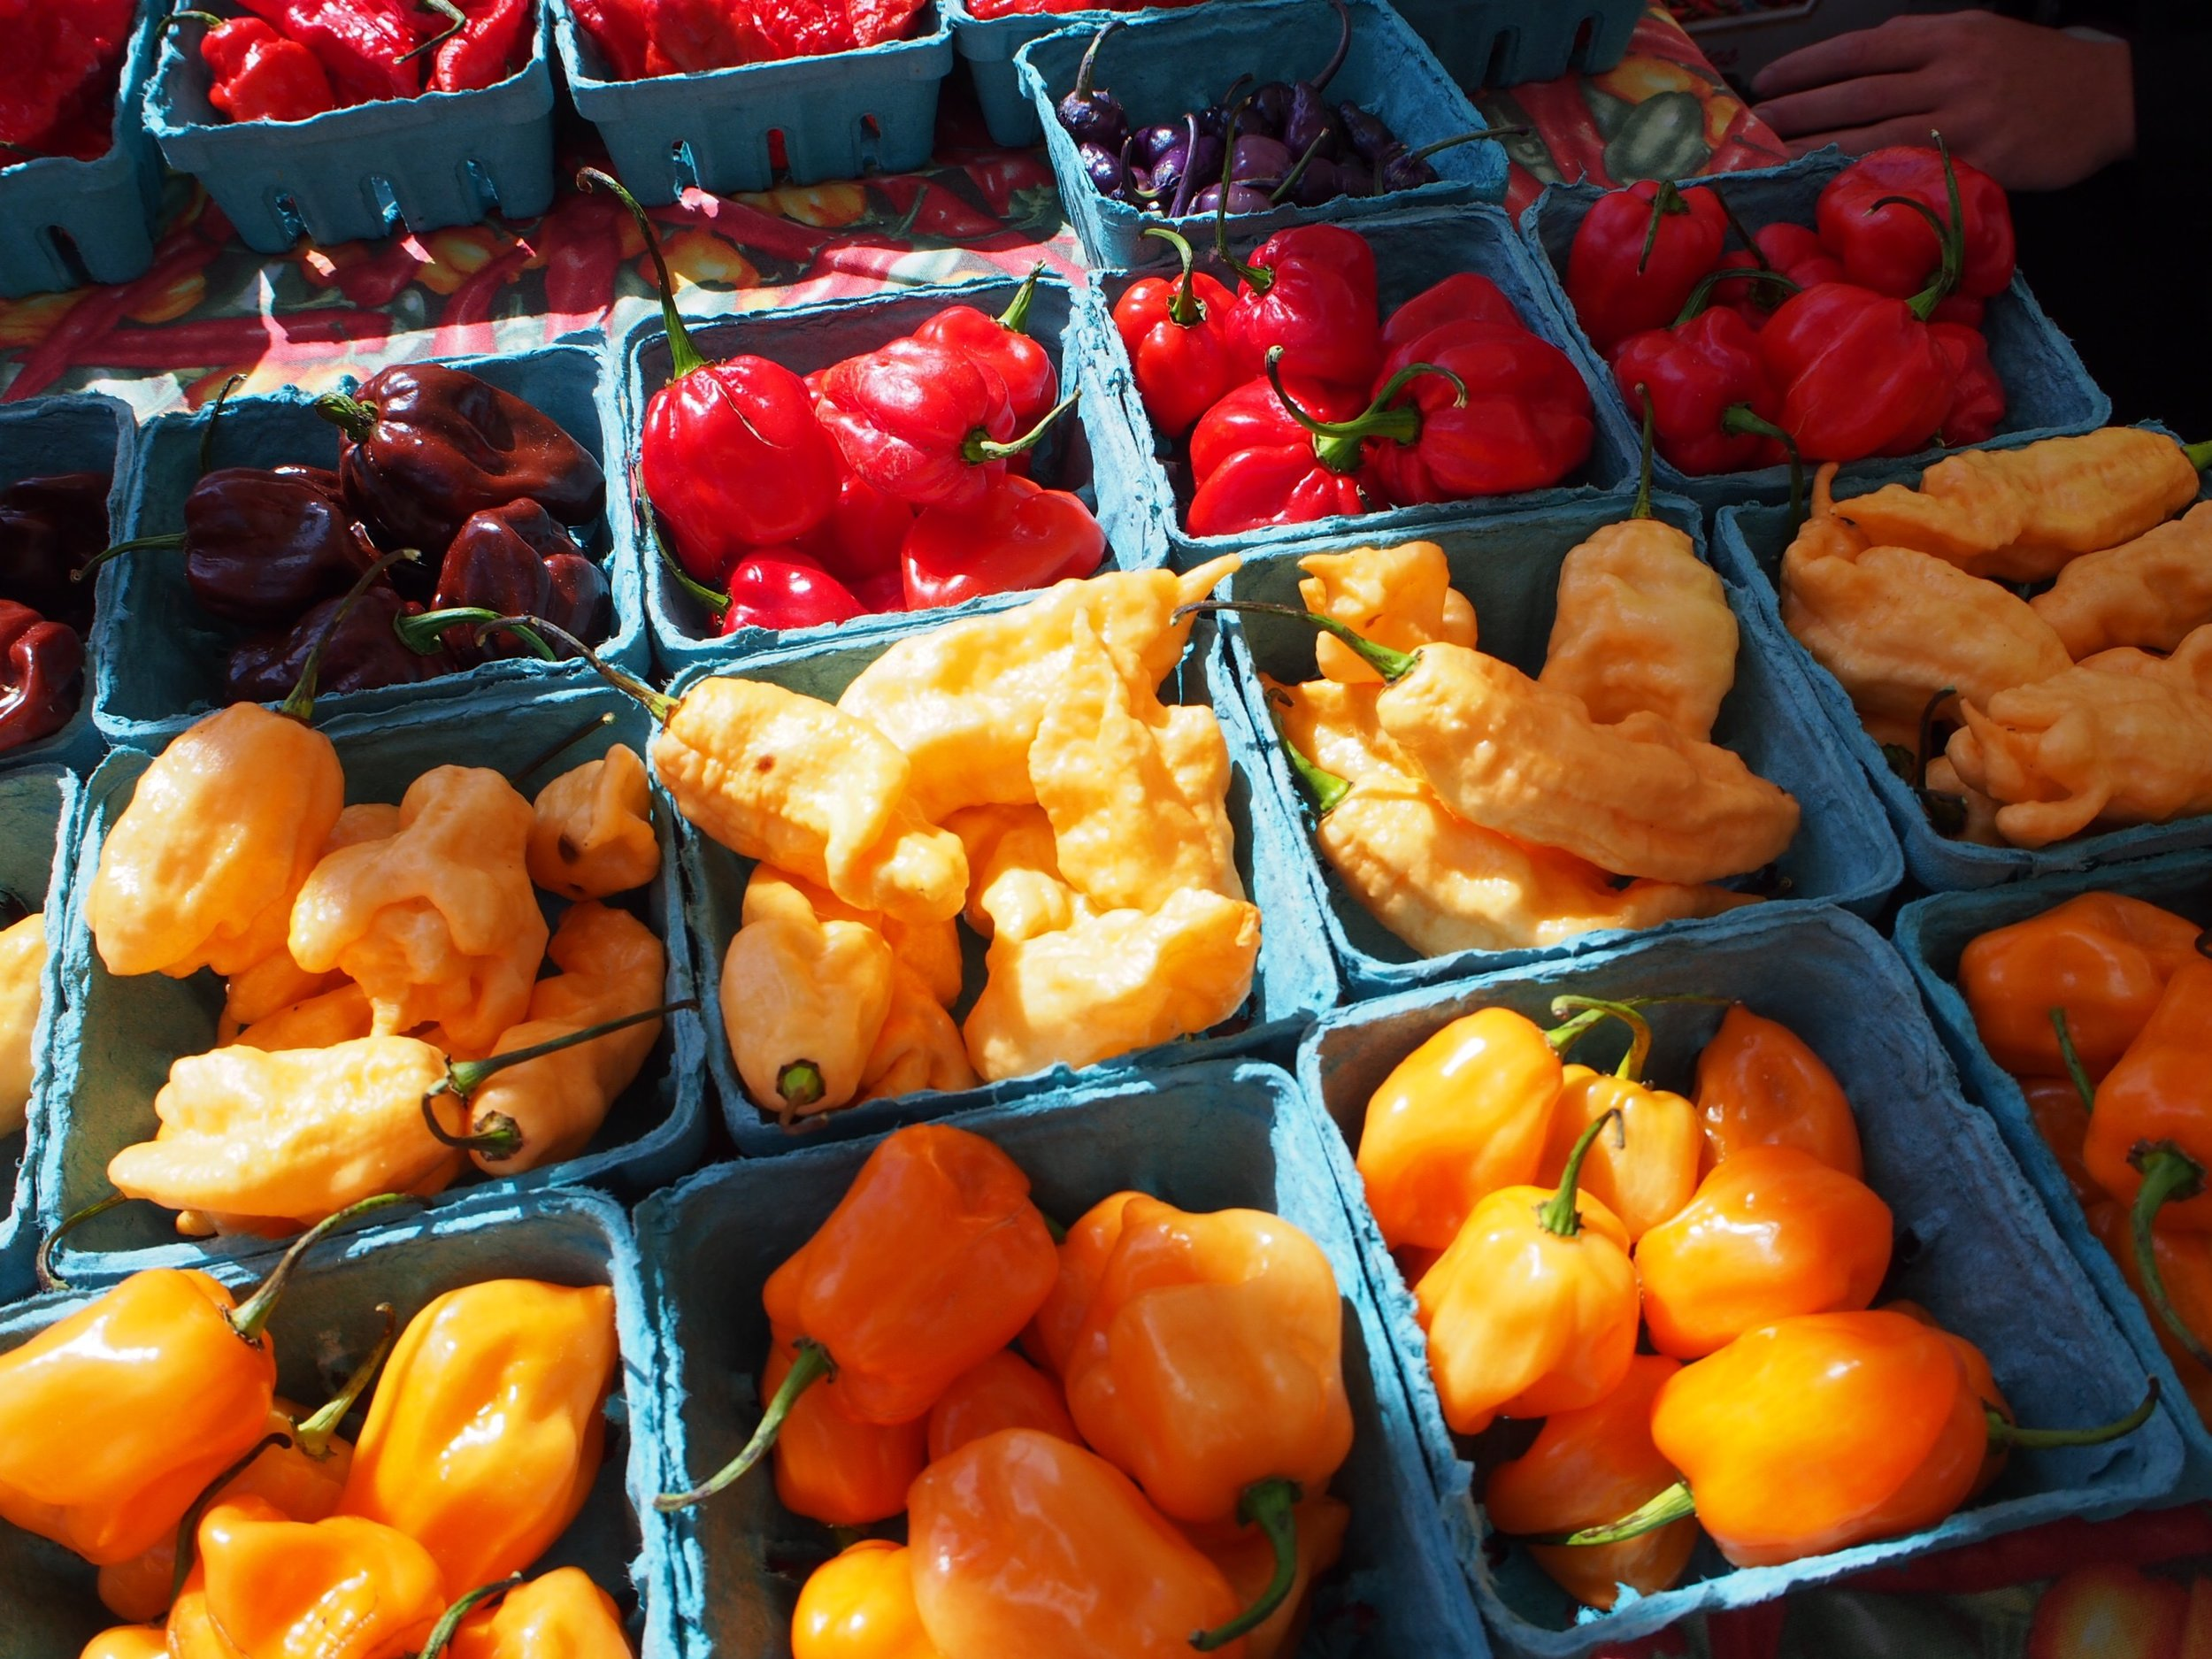 Colorful assortment of peppers